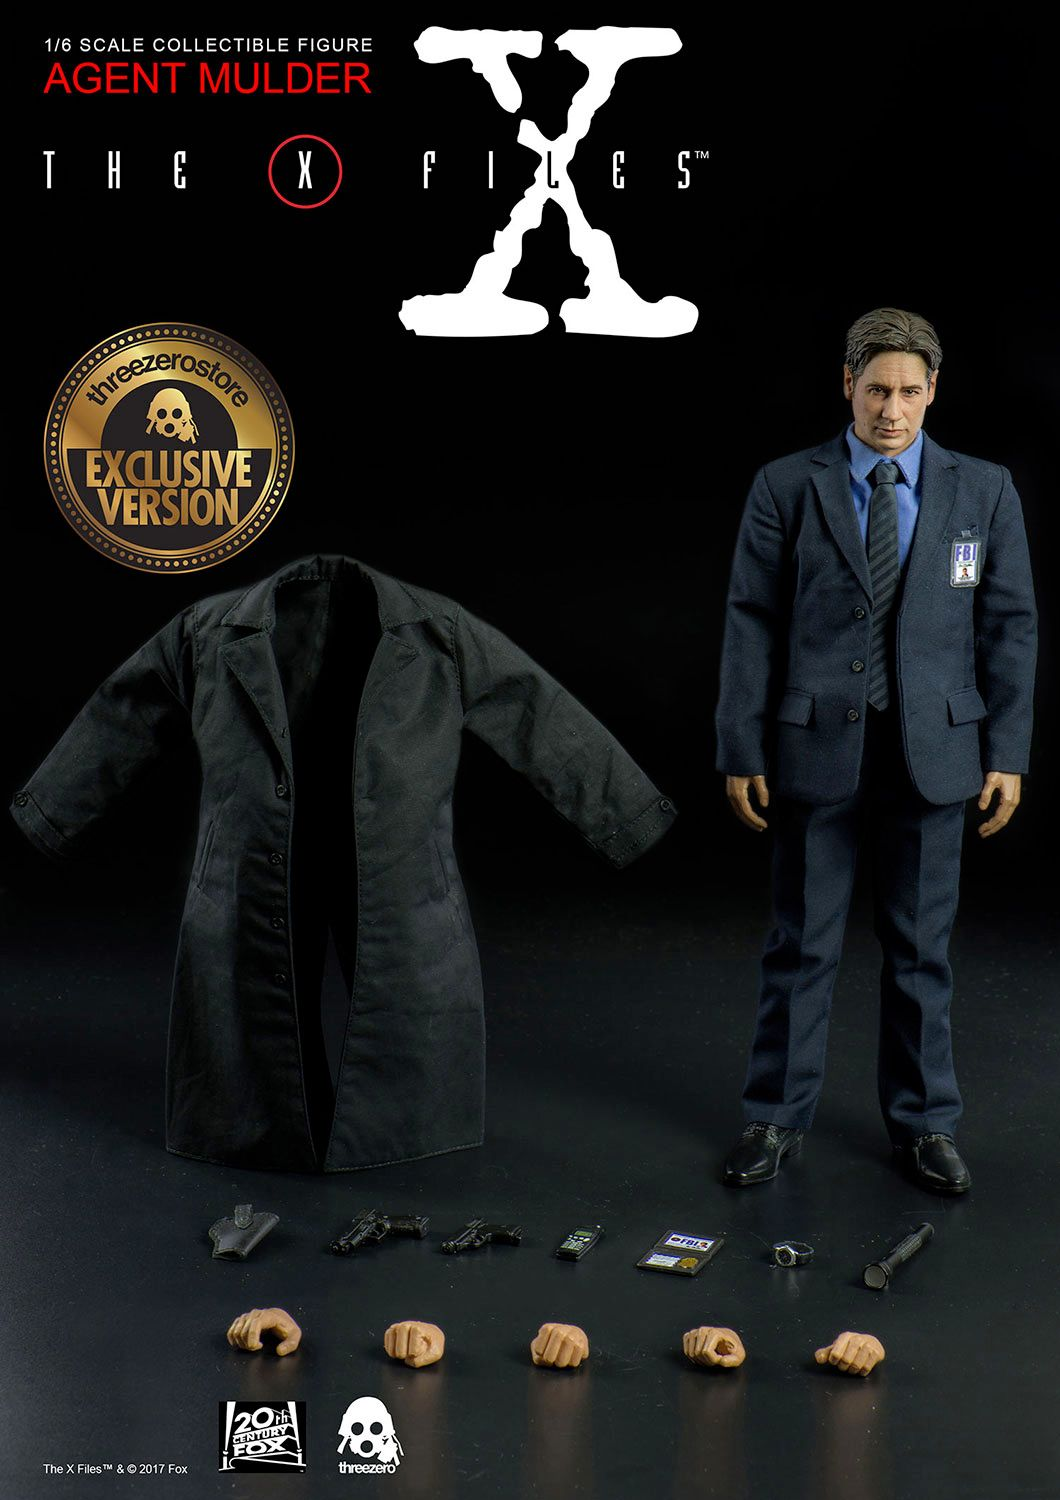 Agent-Mulder-X-Files-Collectible-Figure-ThreeZero-13